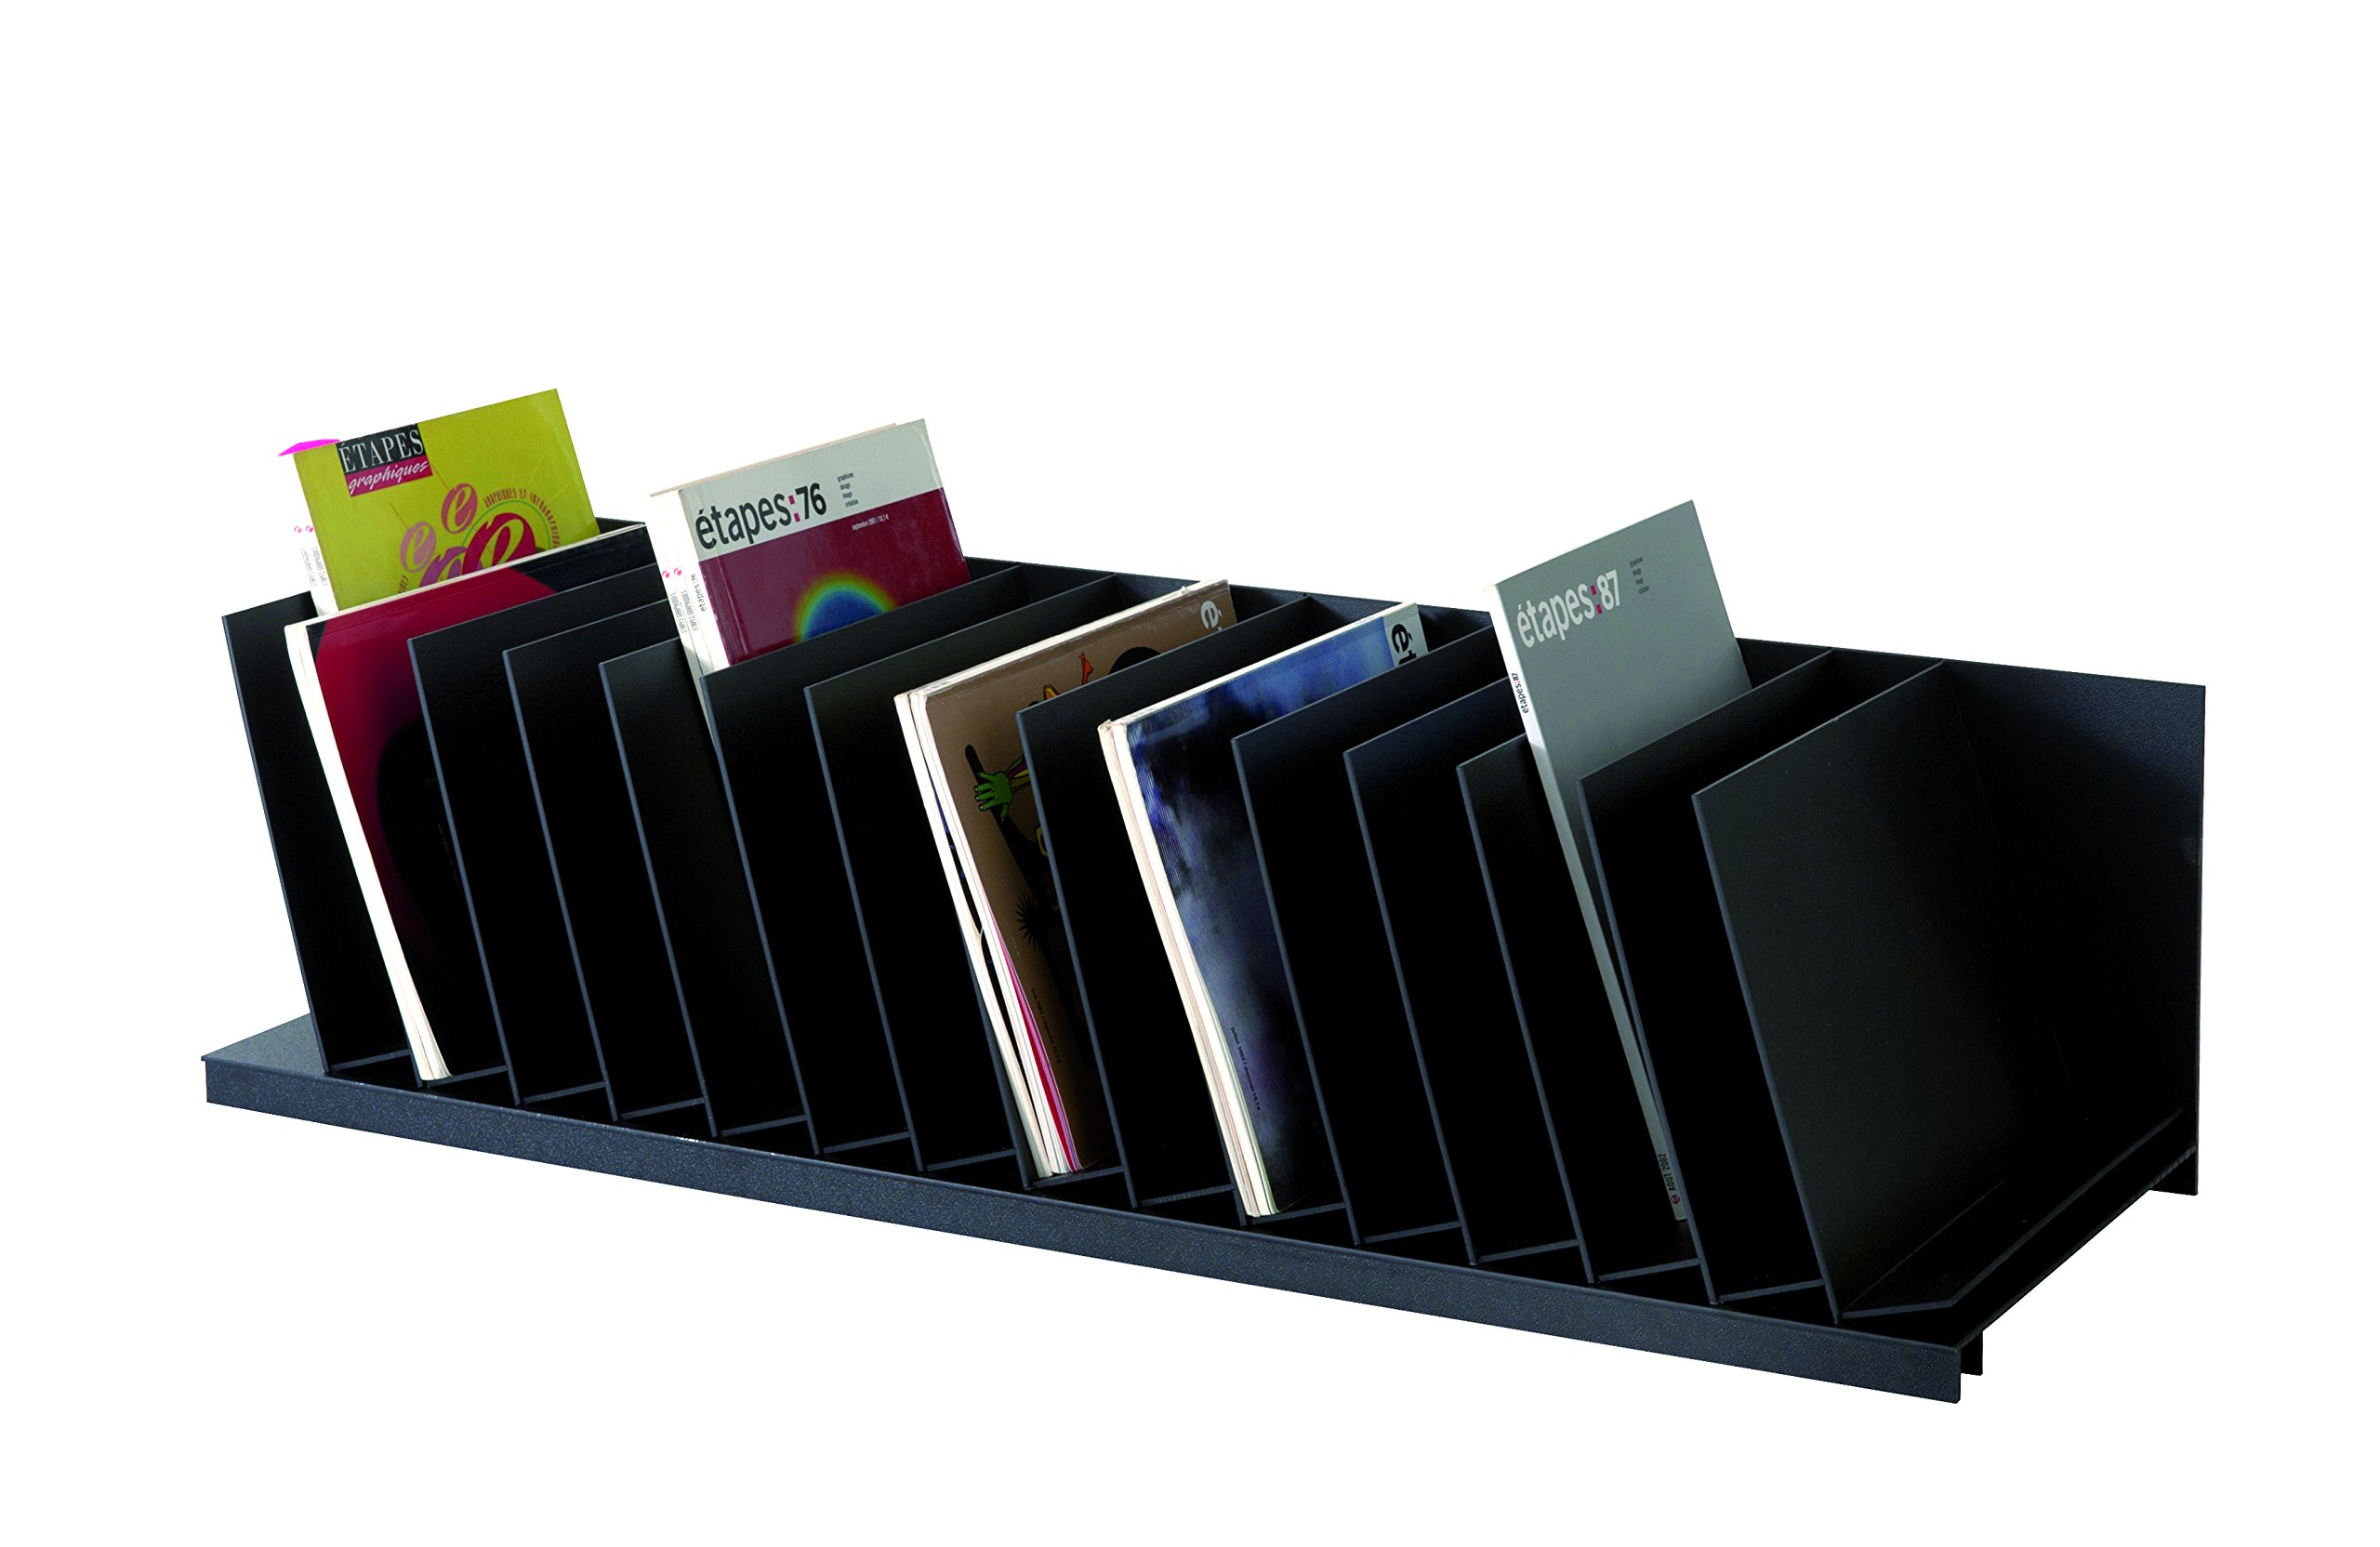 PaperFlow 44-Inch Inclined Vertical Desktop Organizer, 20 Compartments, Black (2041.01)